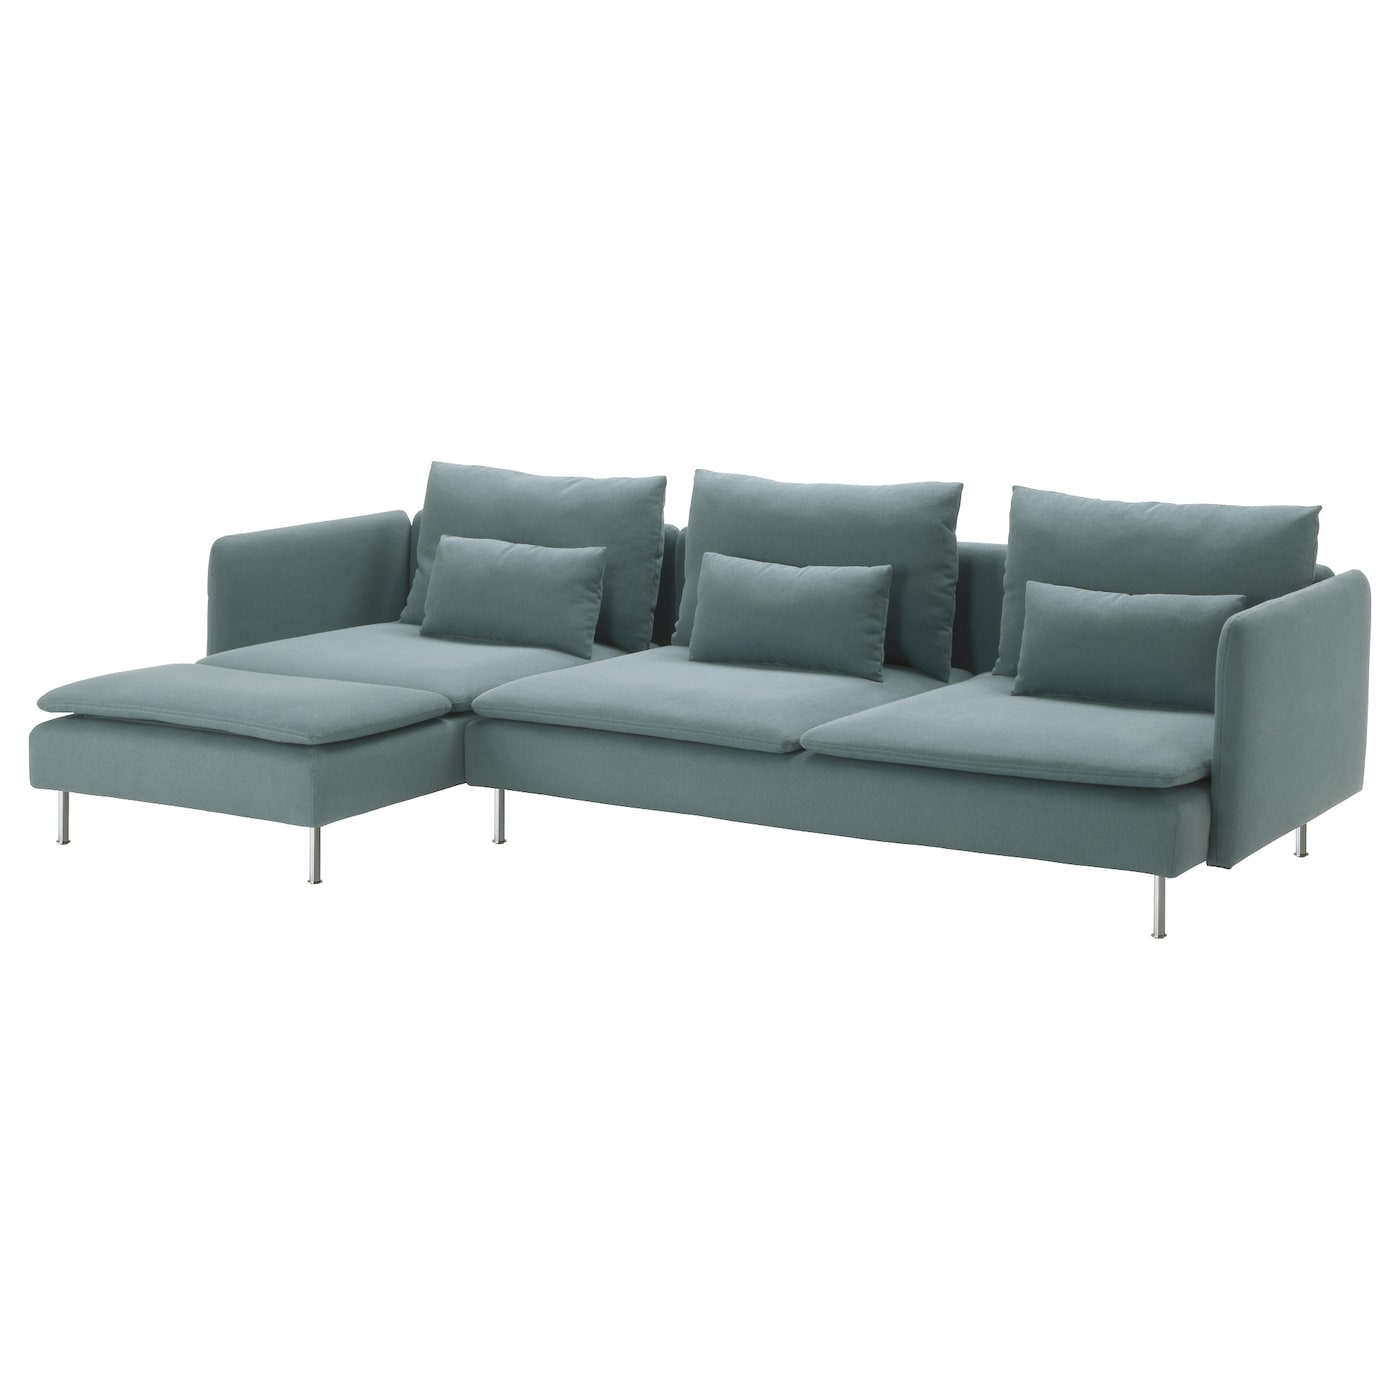 S derhamn three seat sofa and chaise longue finnsta for U sofa med chaiselong